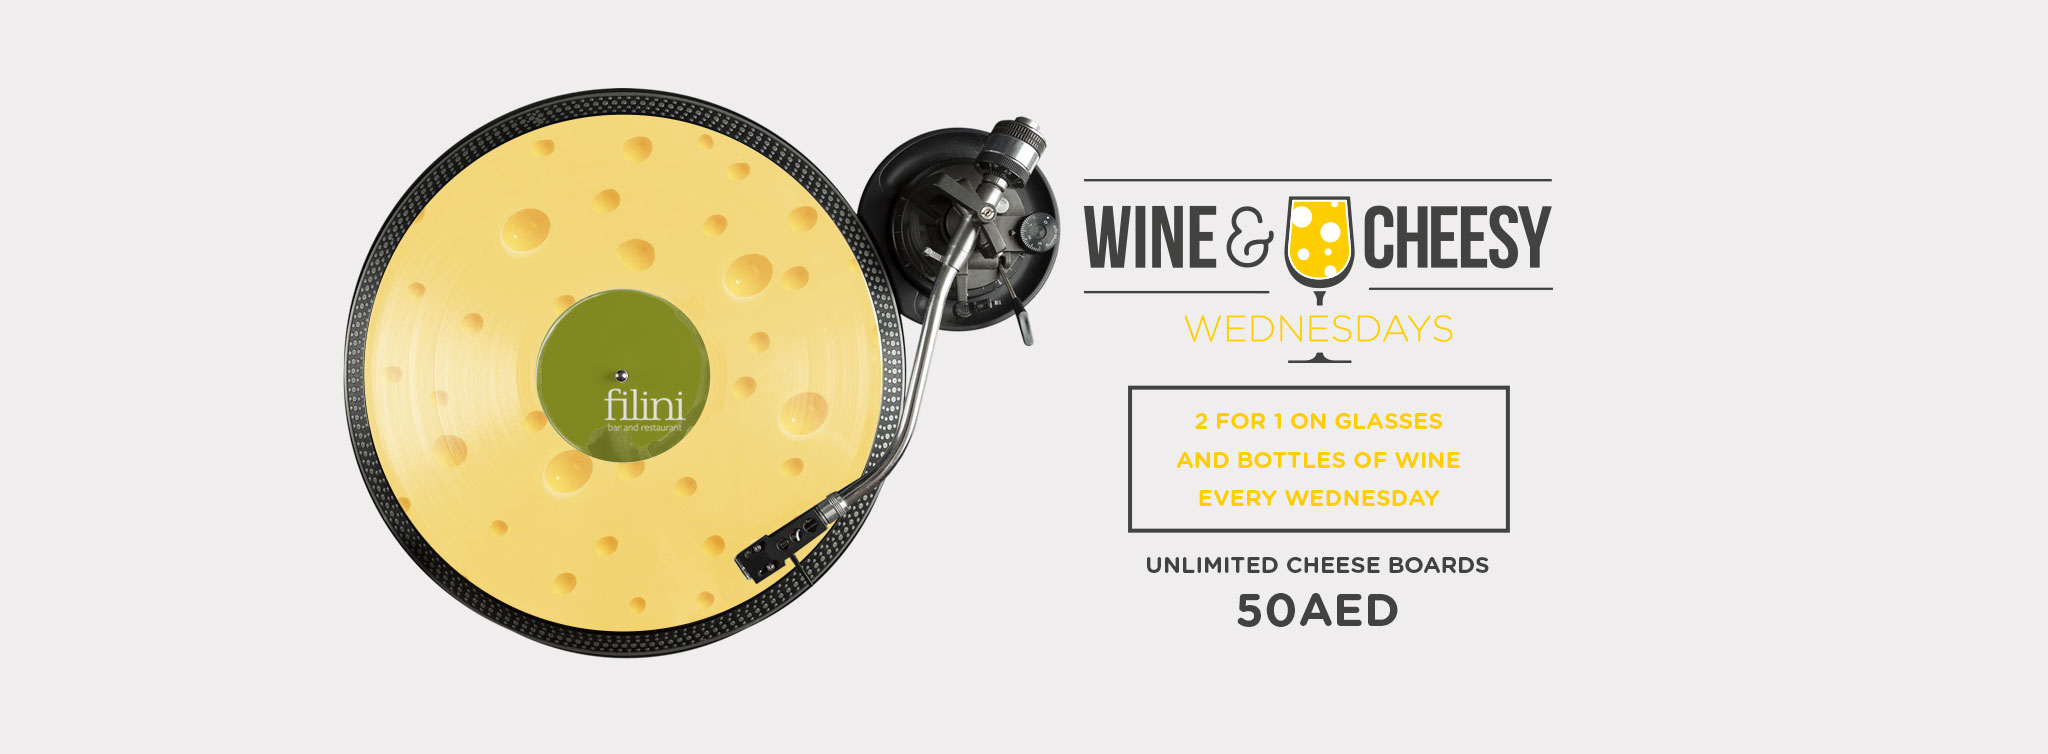 WINE & CHEESY WEDNESDAYS @ Filini Garden